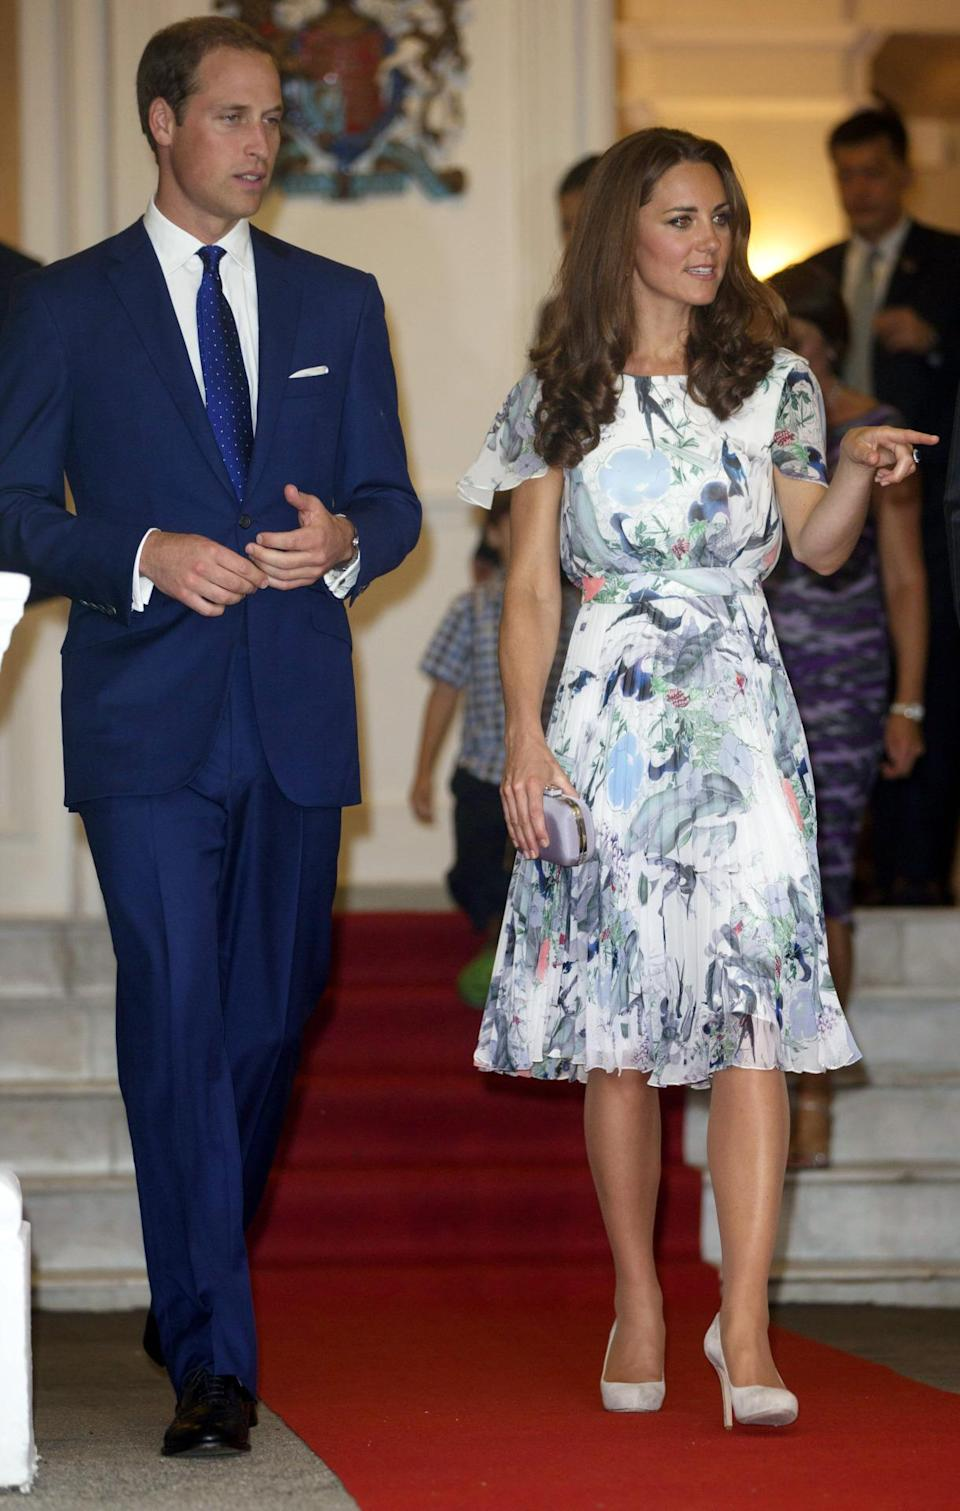 <p>For a reception in Singapore, Kate opted for a lightweight Erdem dress featuring floral detailing. She accessorised with suede L.K. Bennett heels and a grey clutch. </p><p><i>[Photo: PA]</i></p>